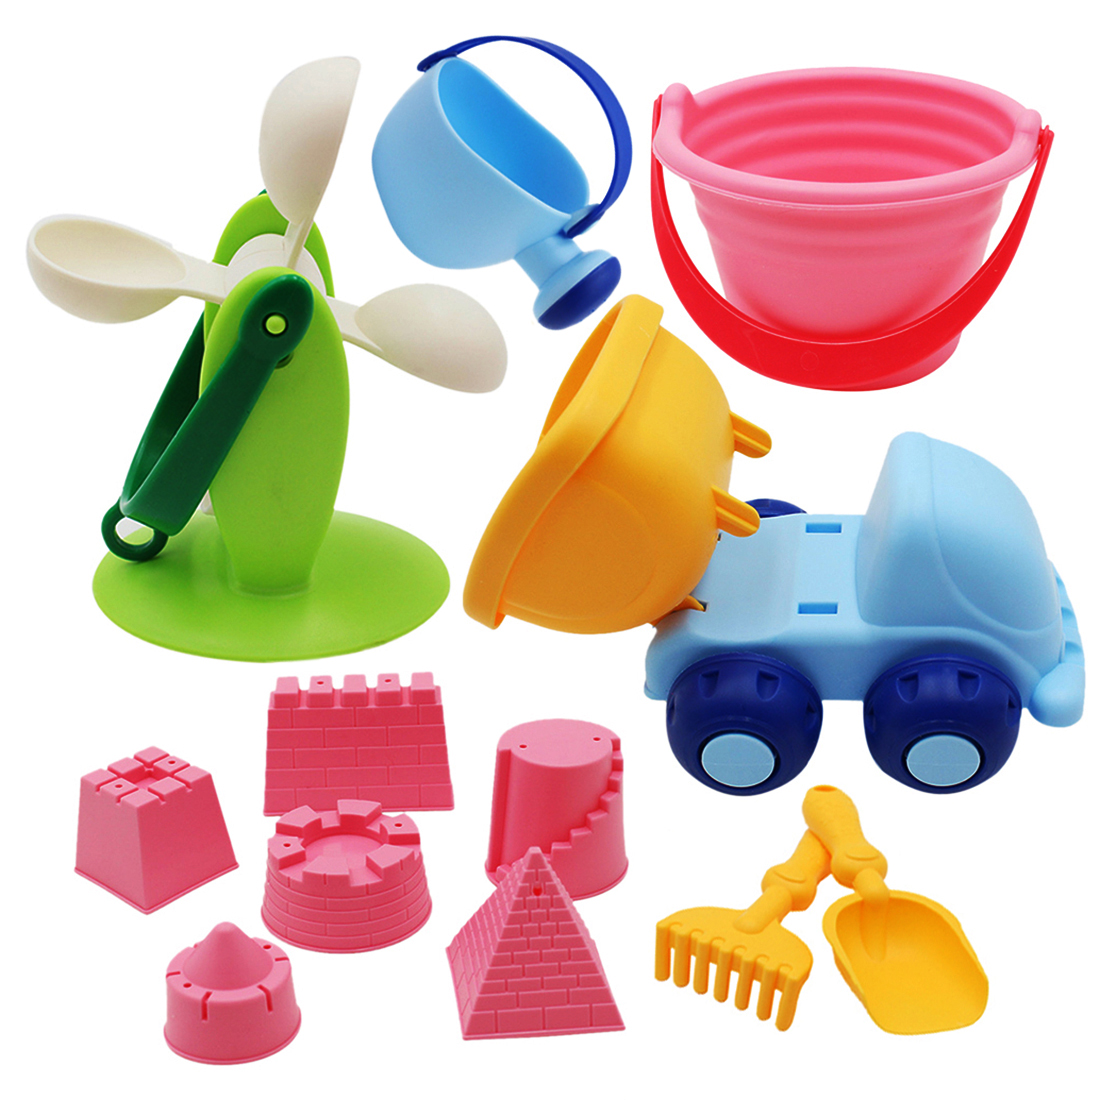 12Pcs Soft Rubber Baby Beach Bucket Toy Set Beach Toy Bath Play Set Sand Molds Tool Water Game Sand Playing For Children Kids